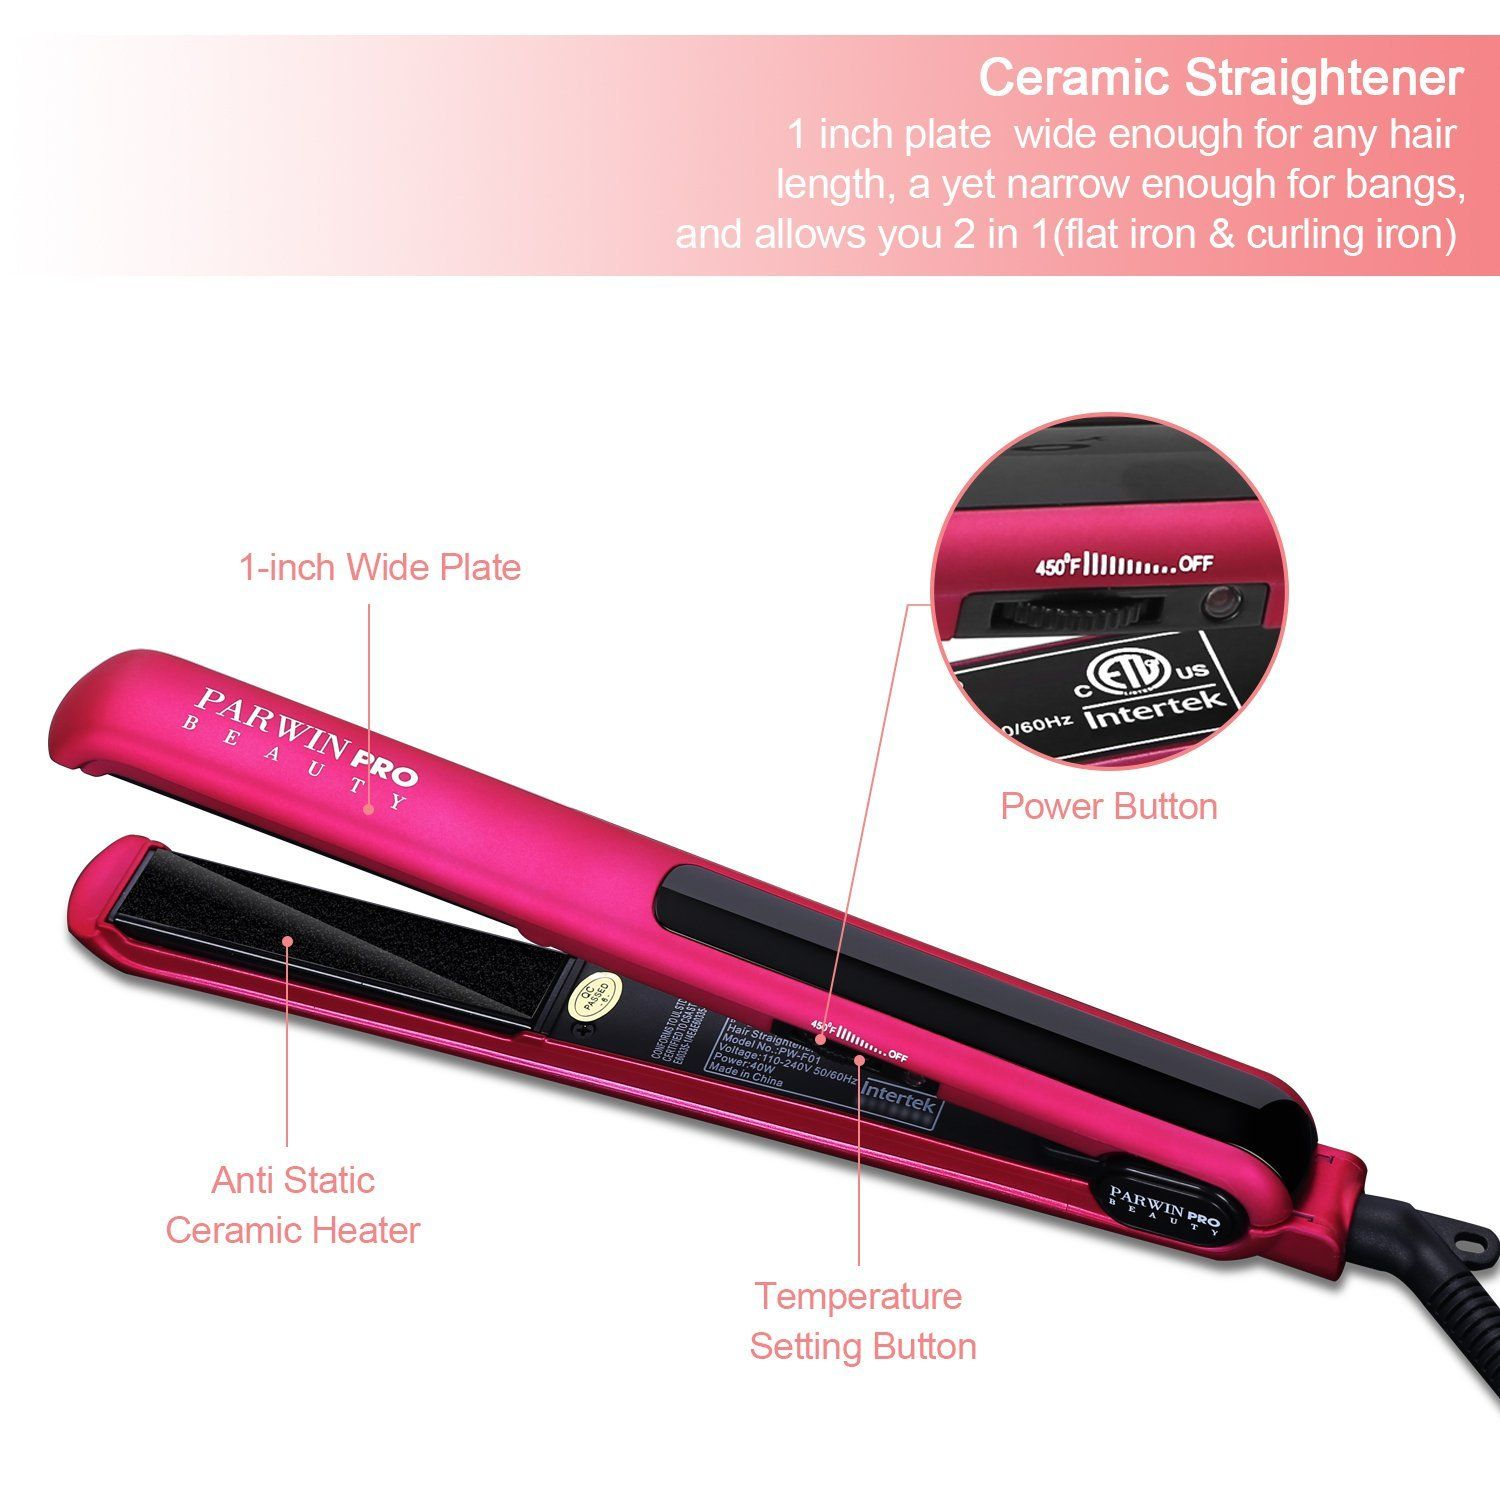 PARWIN BEAUTY Professional 1 Inch Flat Iron with Ceramic Plate Heat up Quickly Pink u003e  sc 1 st  Pinterest & PARWIN BEAUTY Professional 1 Inch Flat Iron with Ceramic Plate Heat ...